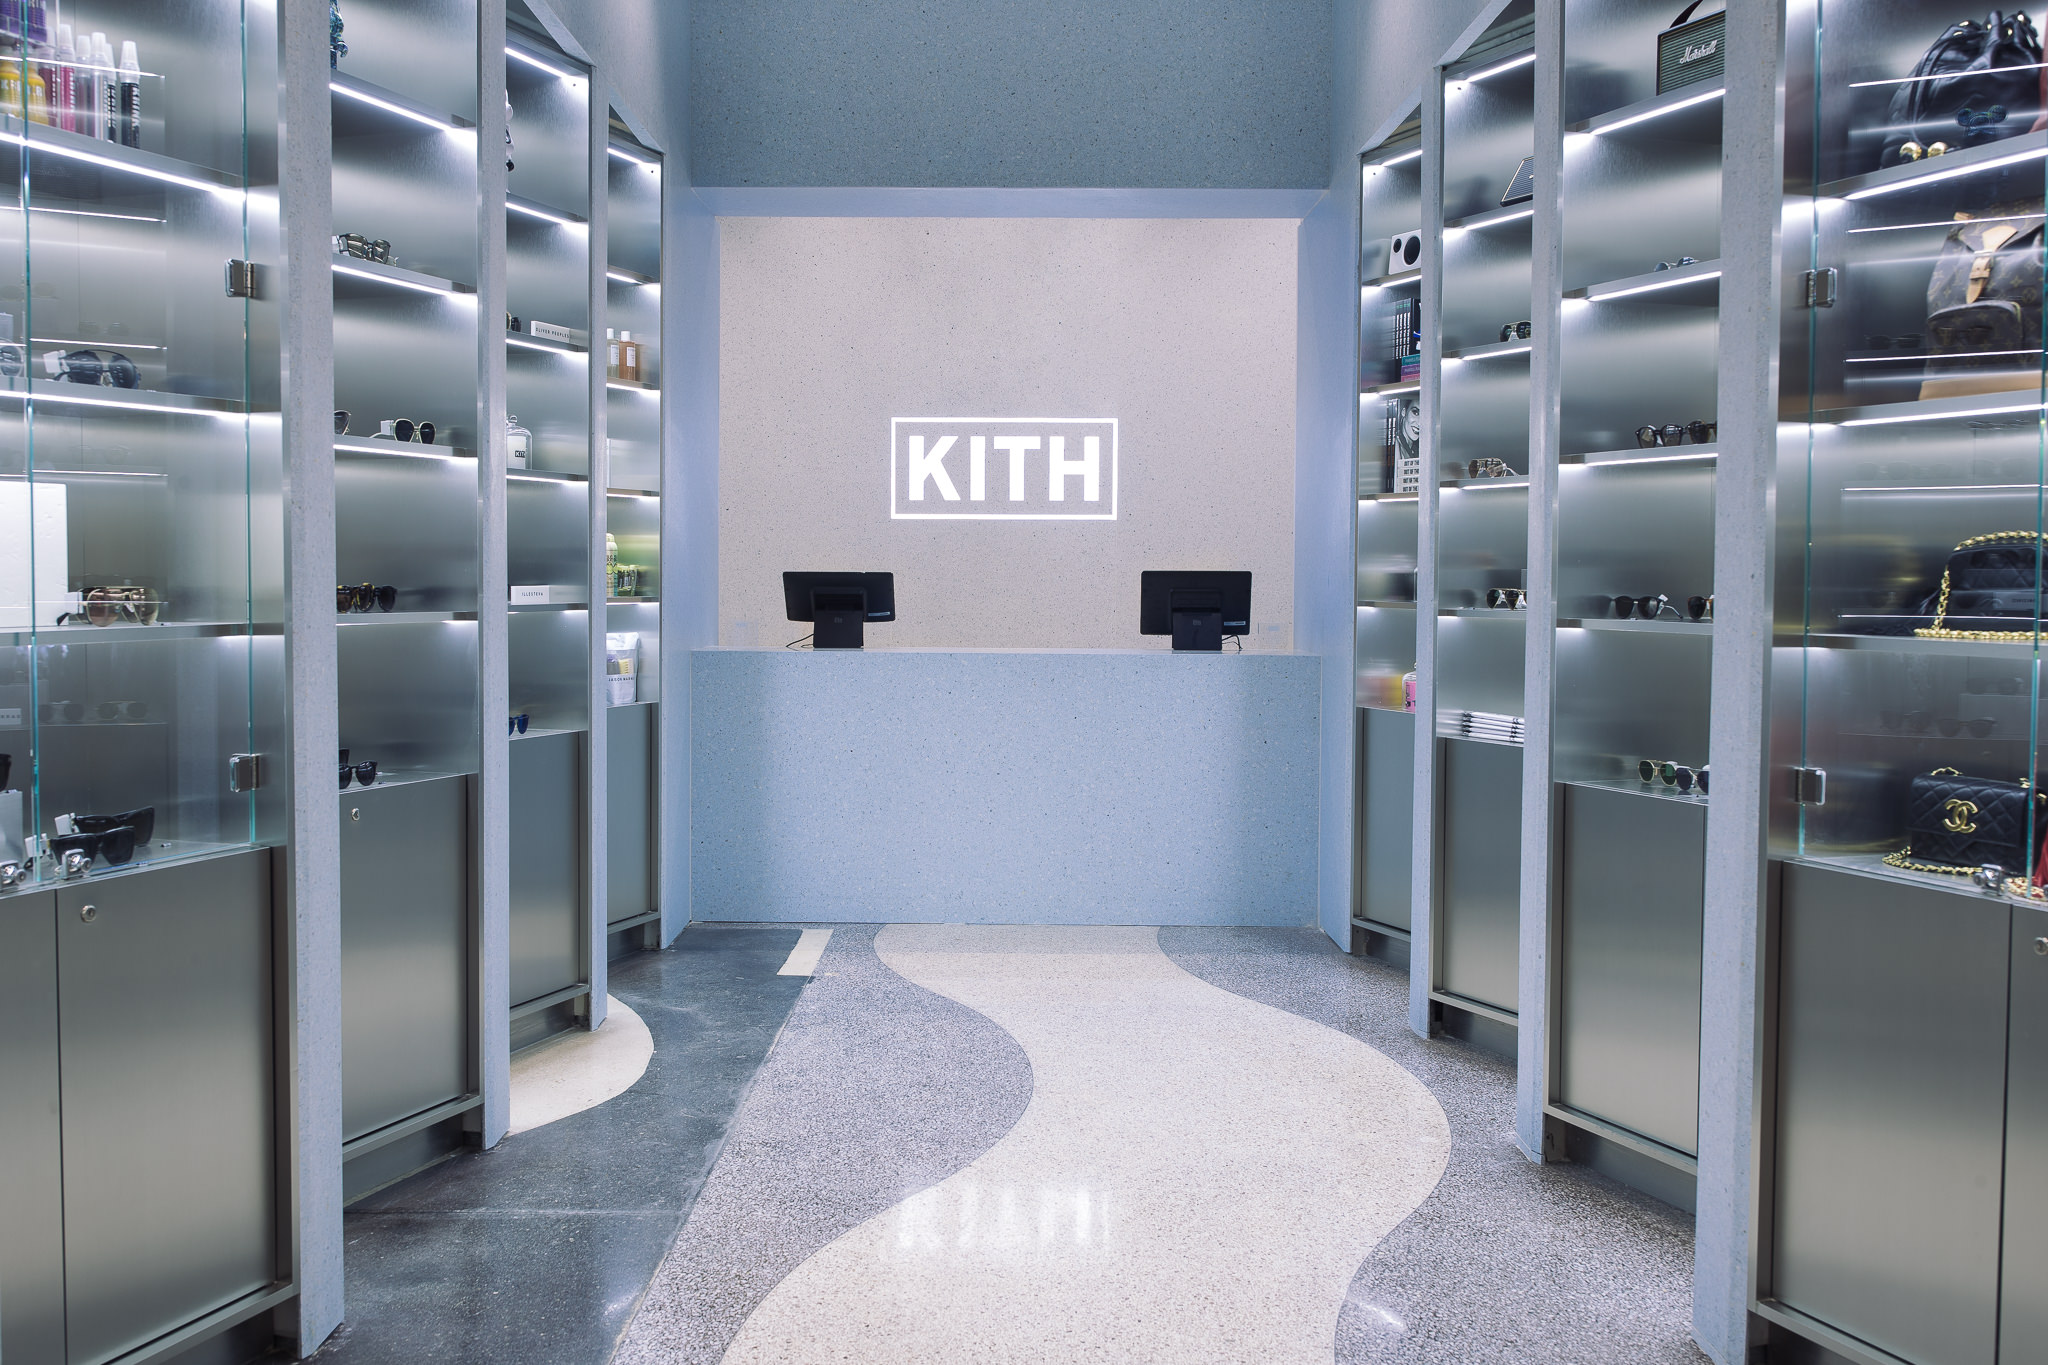 This is Kith's Miami store.